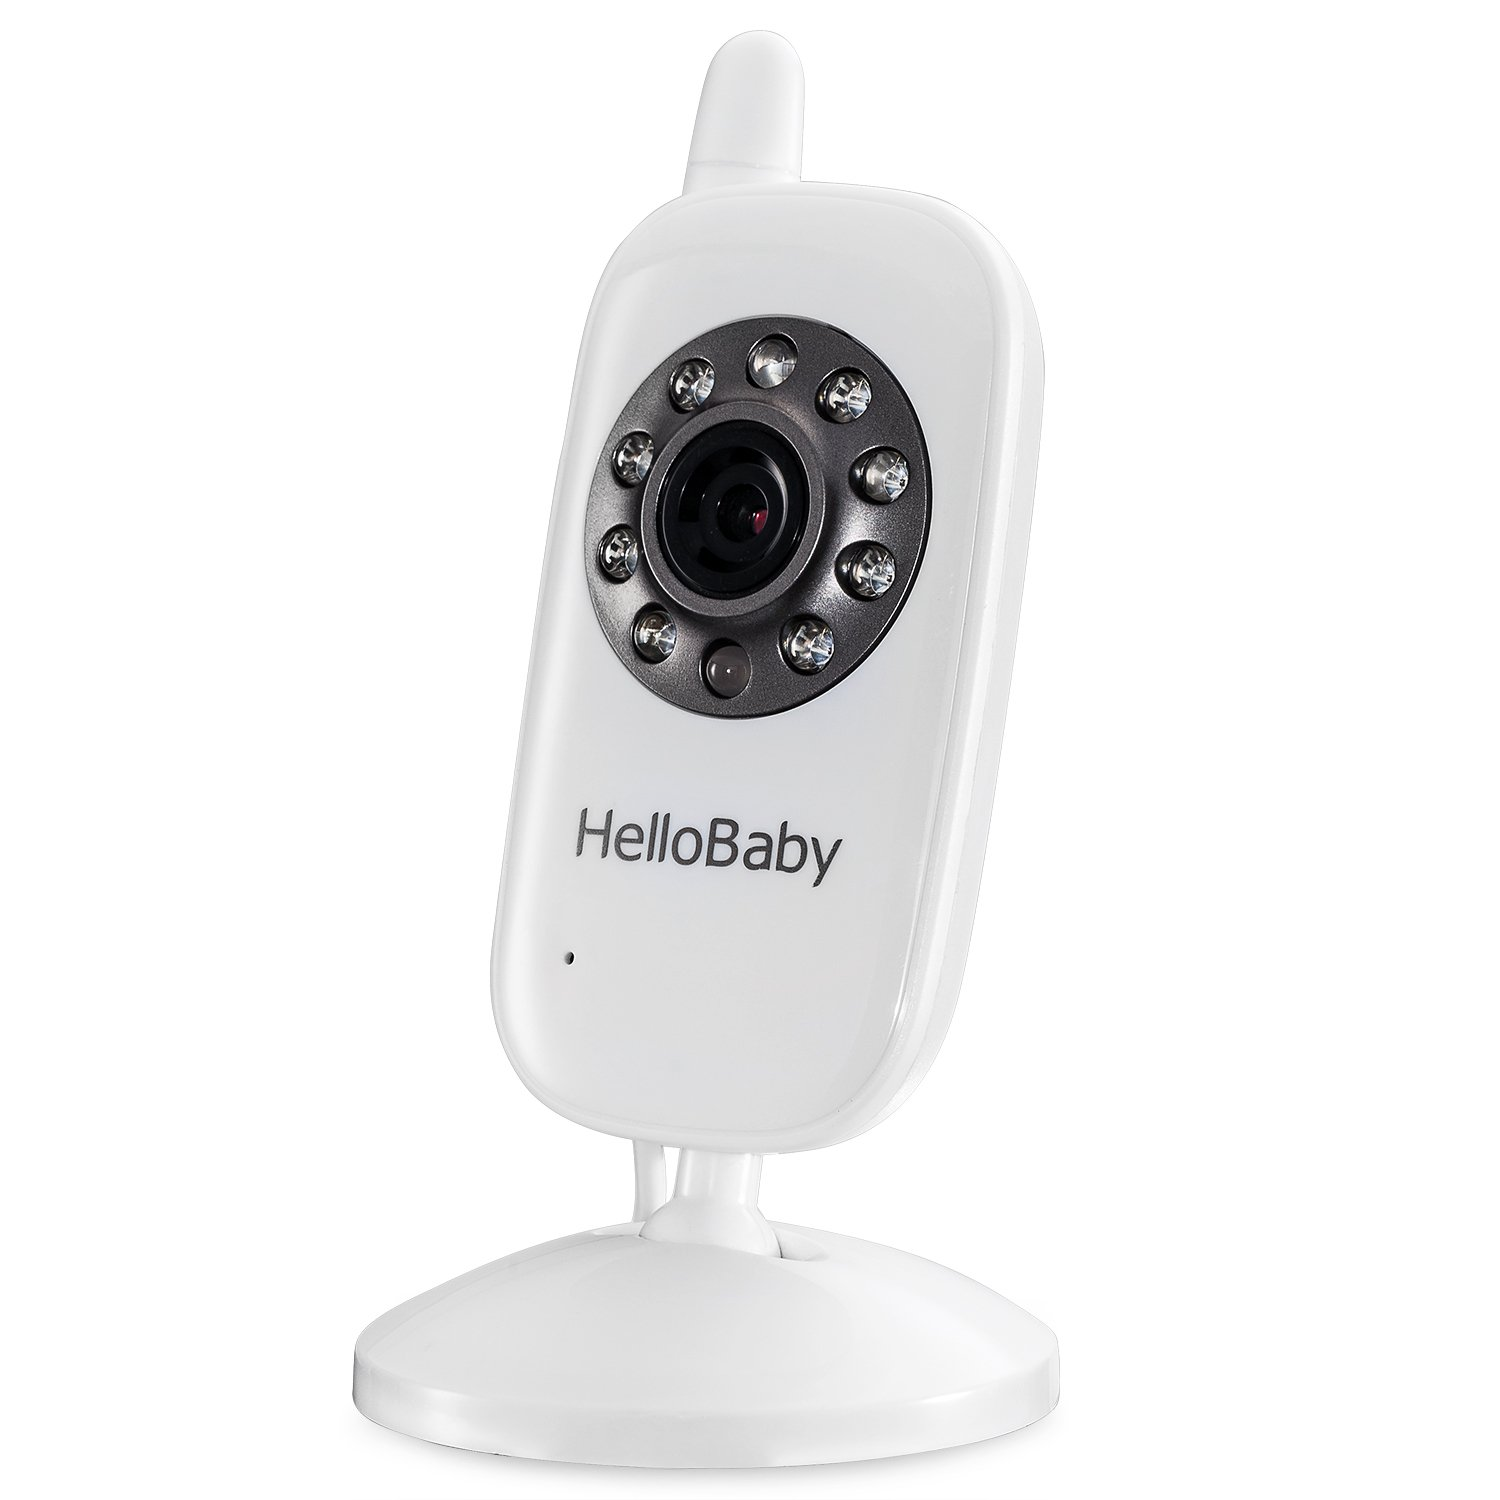 HelloBaby Hello Baby Additional Camera Child Unit Add-on Camera for HB24 HB32 Video Baby Monitor HB24-TX